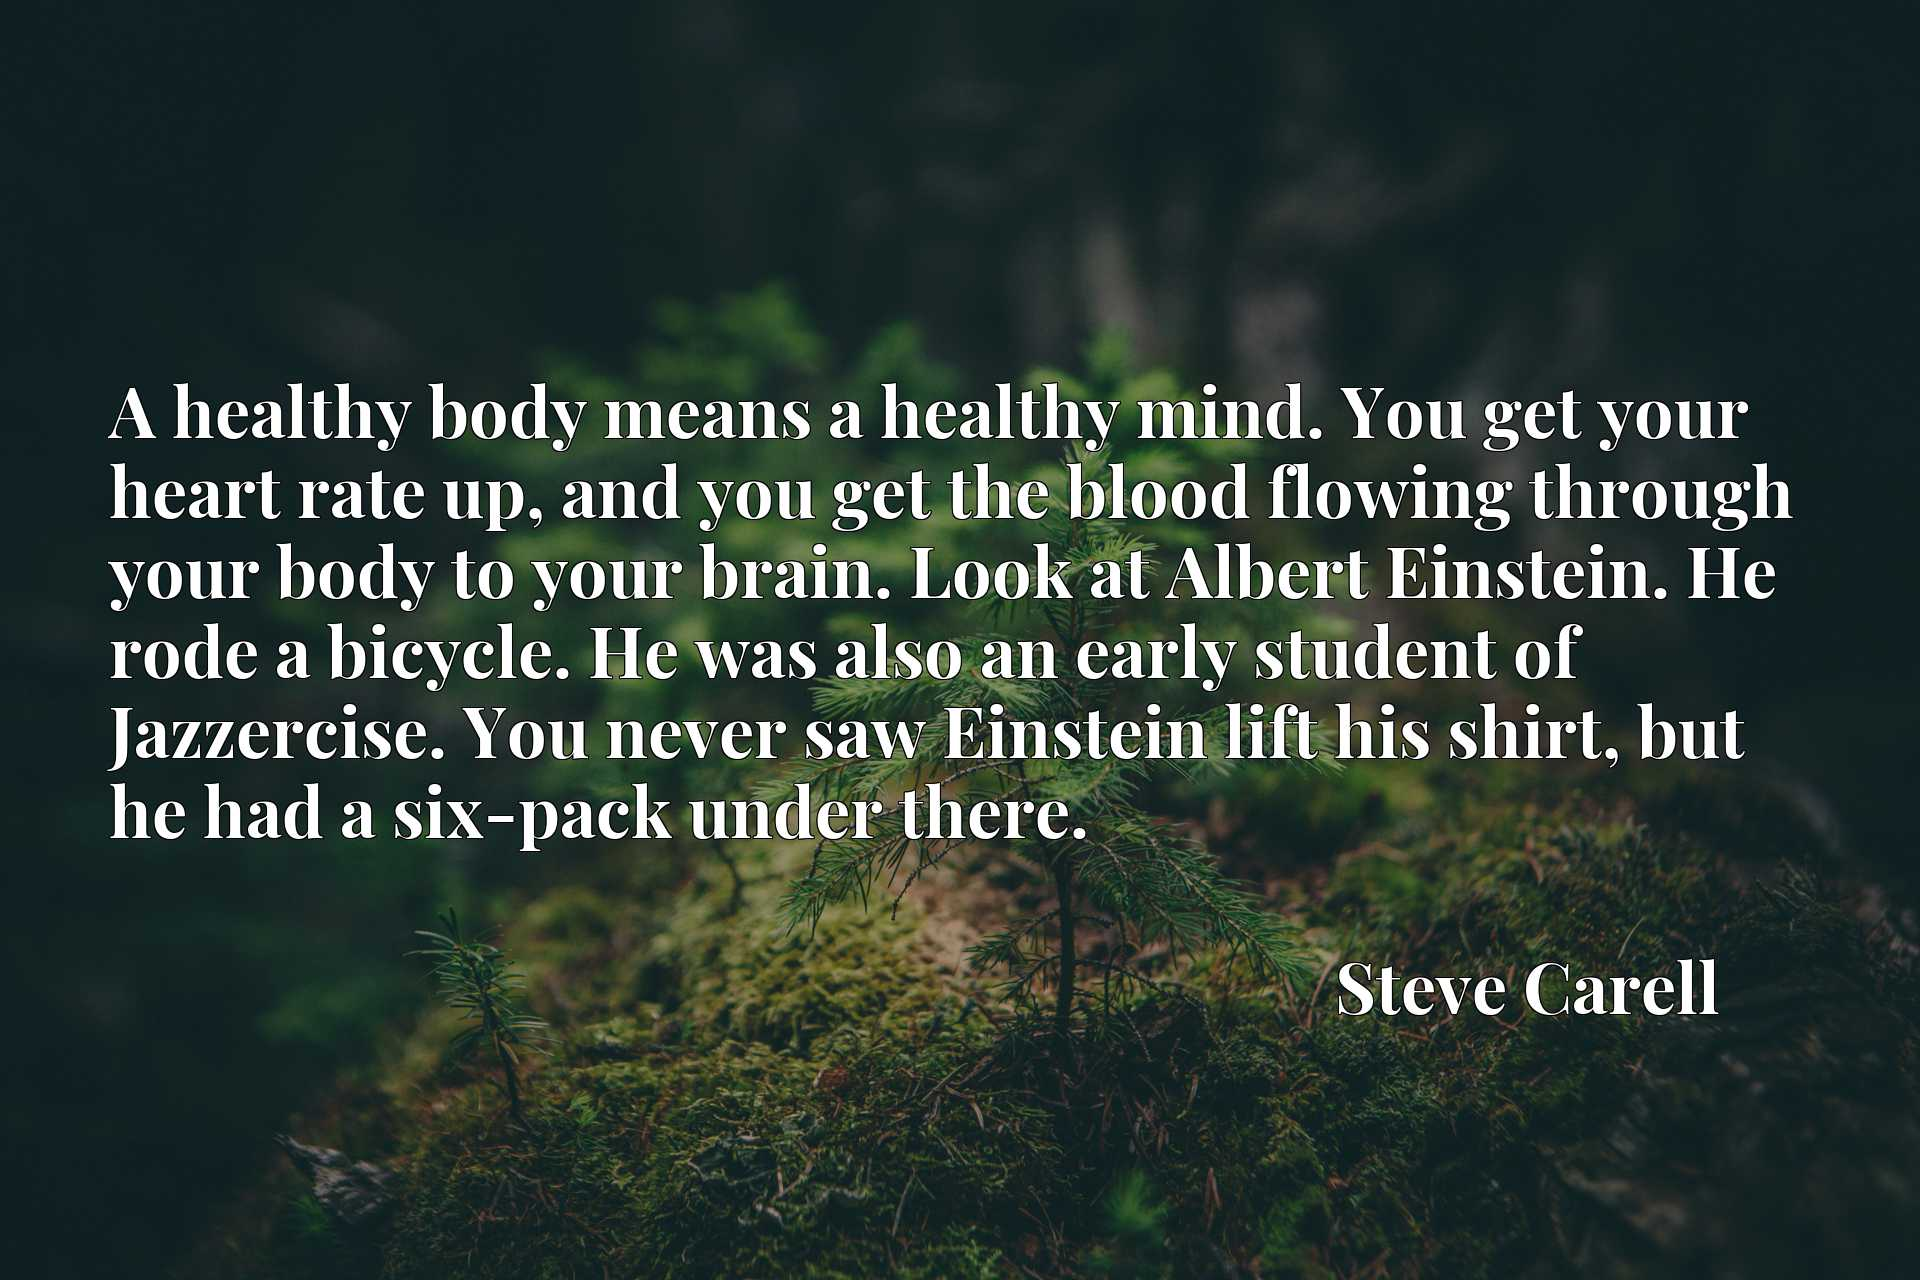 A healthy body means a healthy mind. You get your heart rate up, and you get the blood flowing through your body to your brain. Look at Albert Einstein. He rode a bicycle. He was also an early student of Jazzercise. You never saw Einstein lift his shirt, but he had a six-pack under there.